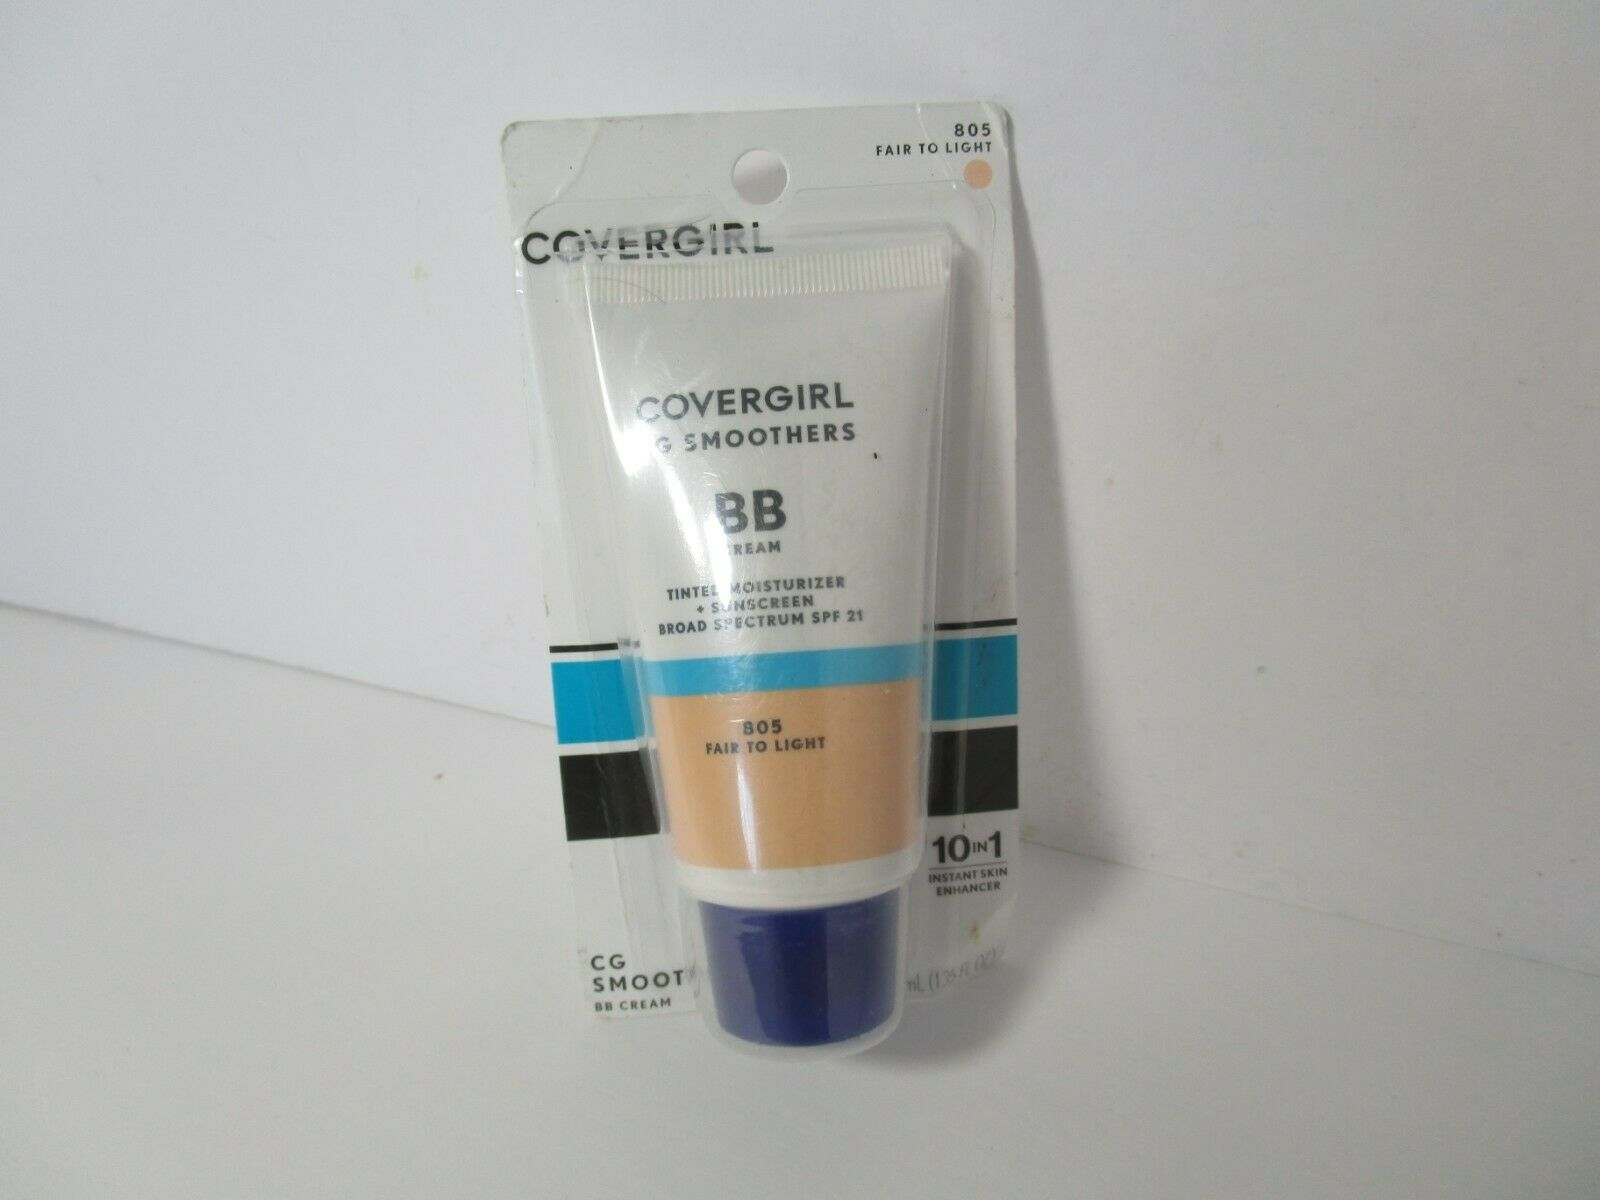 COVERGIRL Smoothers Lightweight BB Cream, Fair to Light 805,